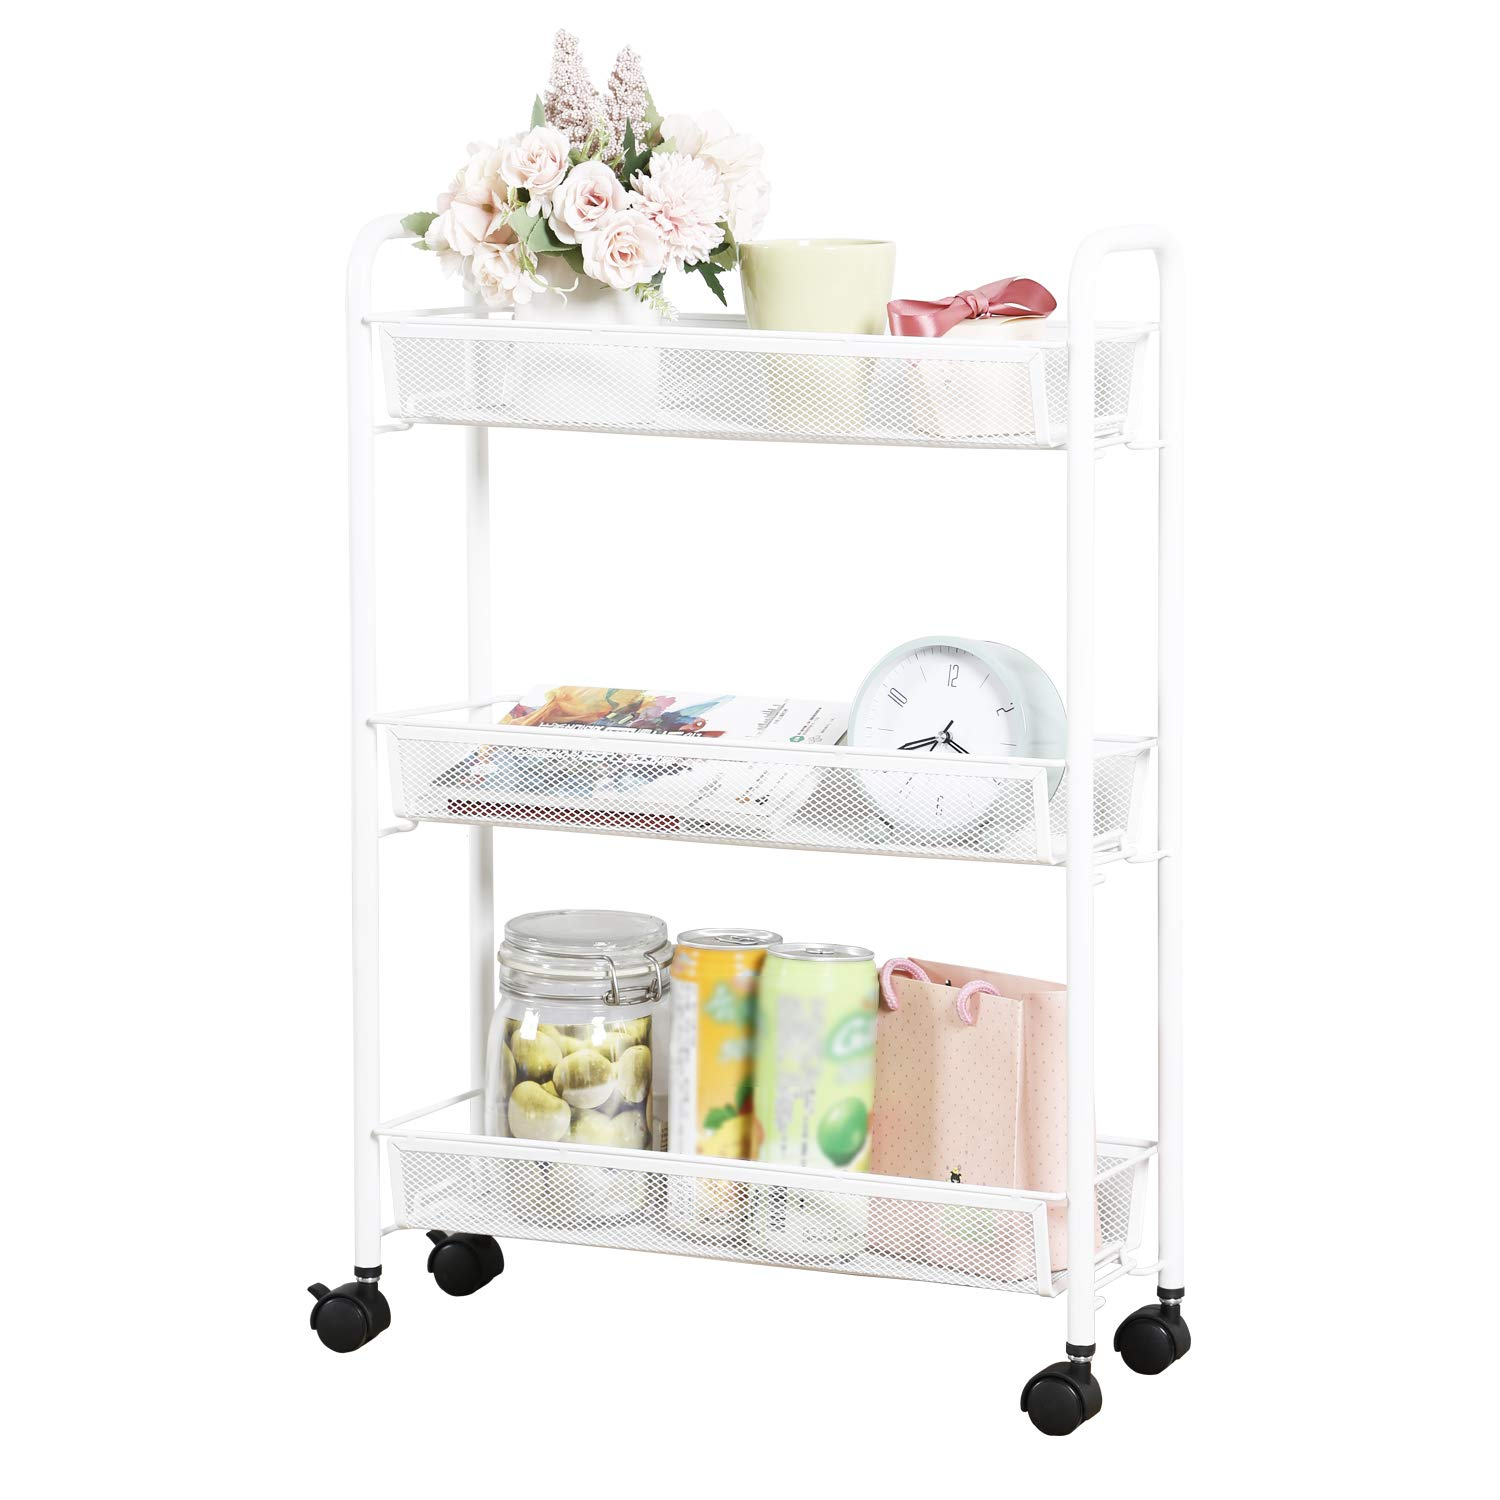 DESIGNA Rolling Household Trolley Cart, 3 Tier Slim Utility Carts with Steel Wire Shelves, Mesh Storage Cart with Easy Moving Wheels for Home Kitchen Bathroom, Multi-Function, White by DESIGNA